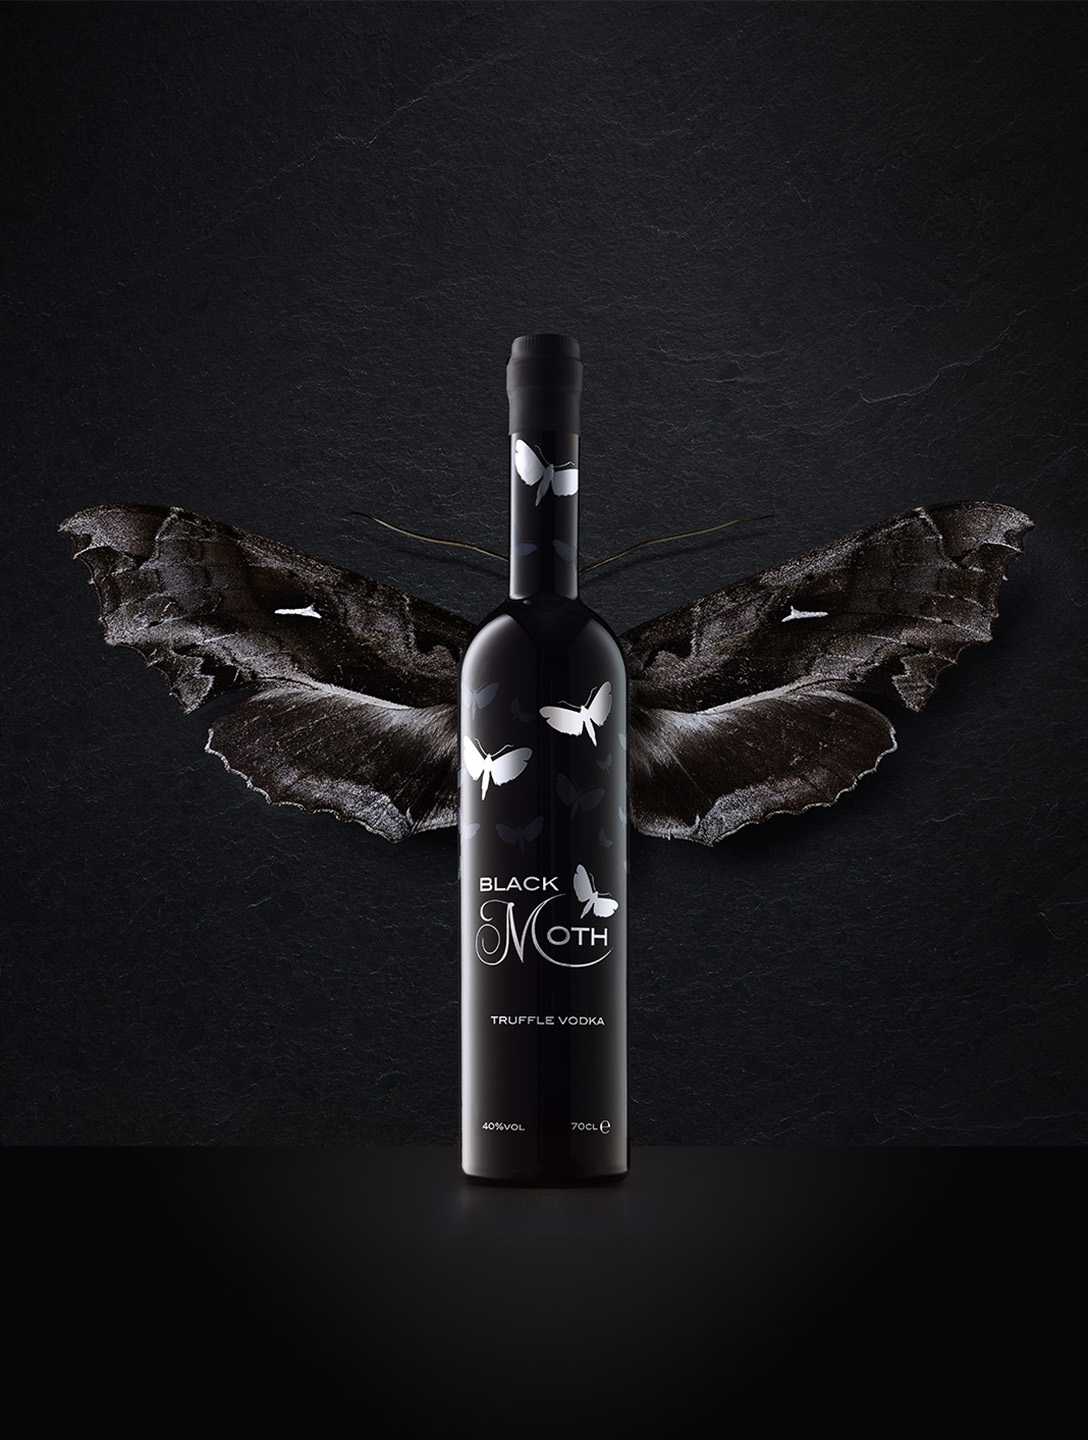 Tal_Black_Moth_Bottle